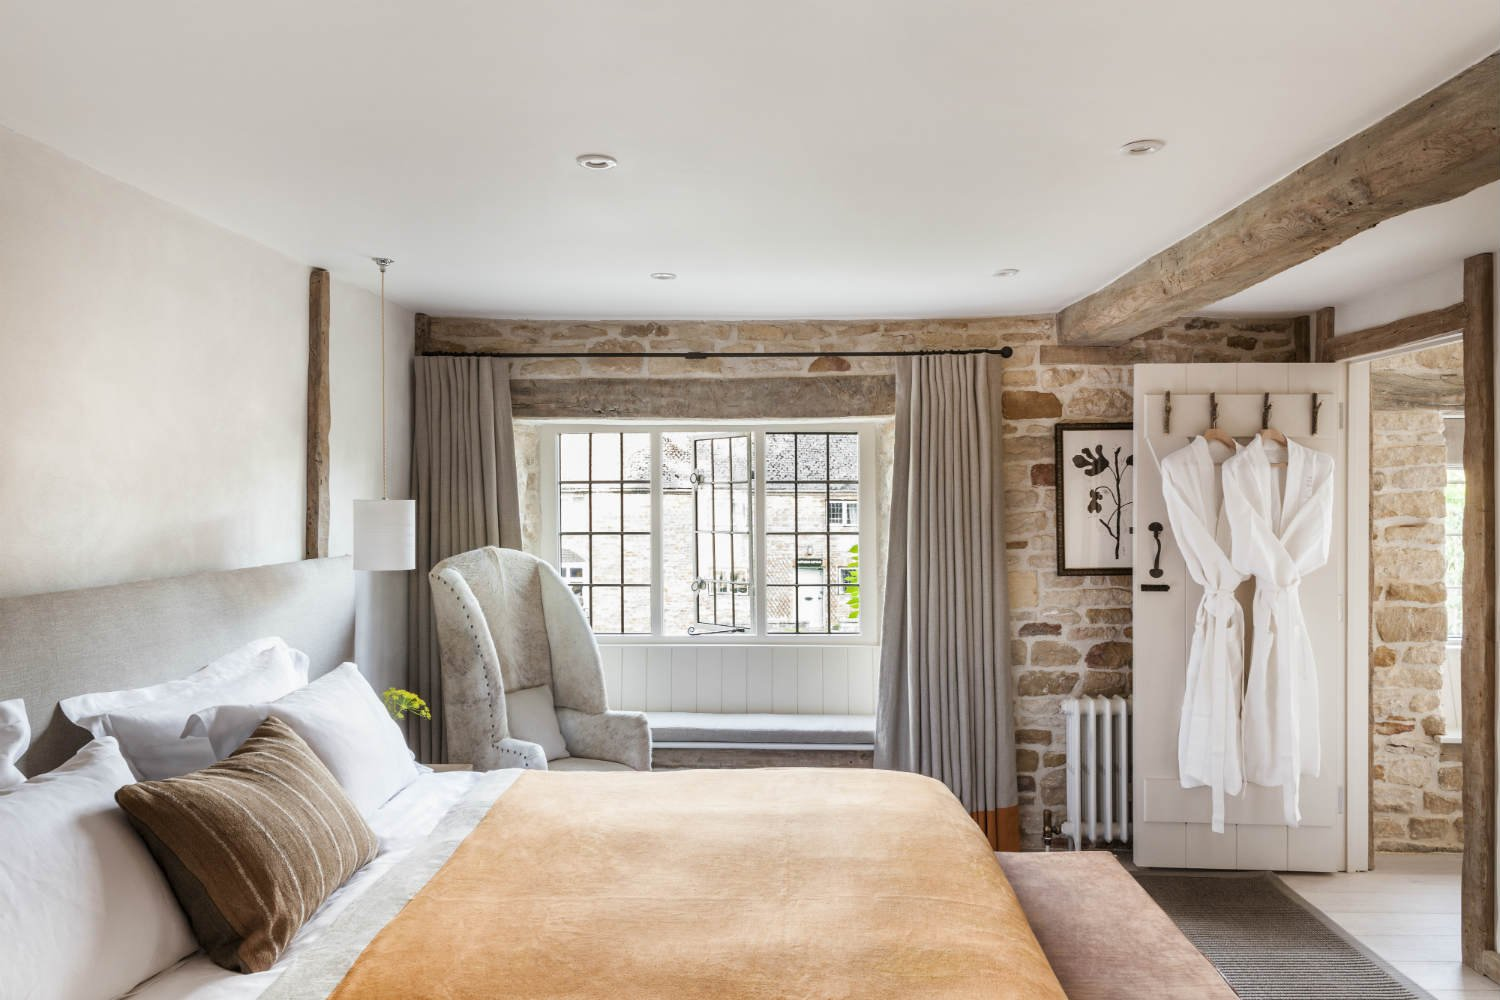 The Wild Rabbit, Kingham Pub with Rooms in Oxfordshire 17